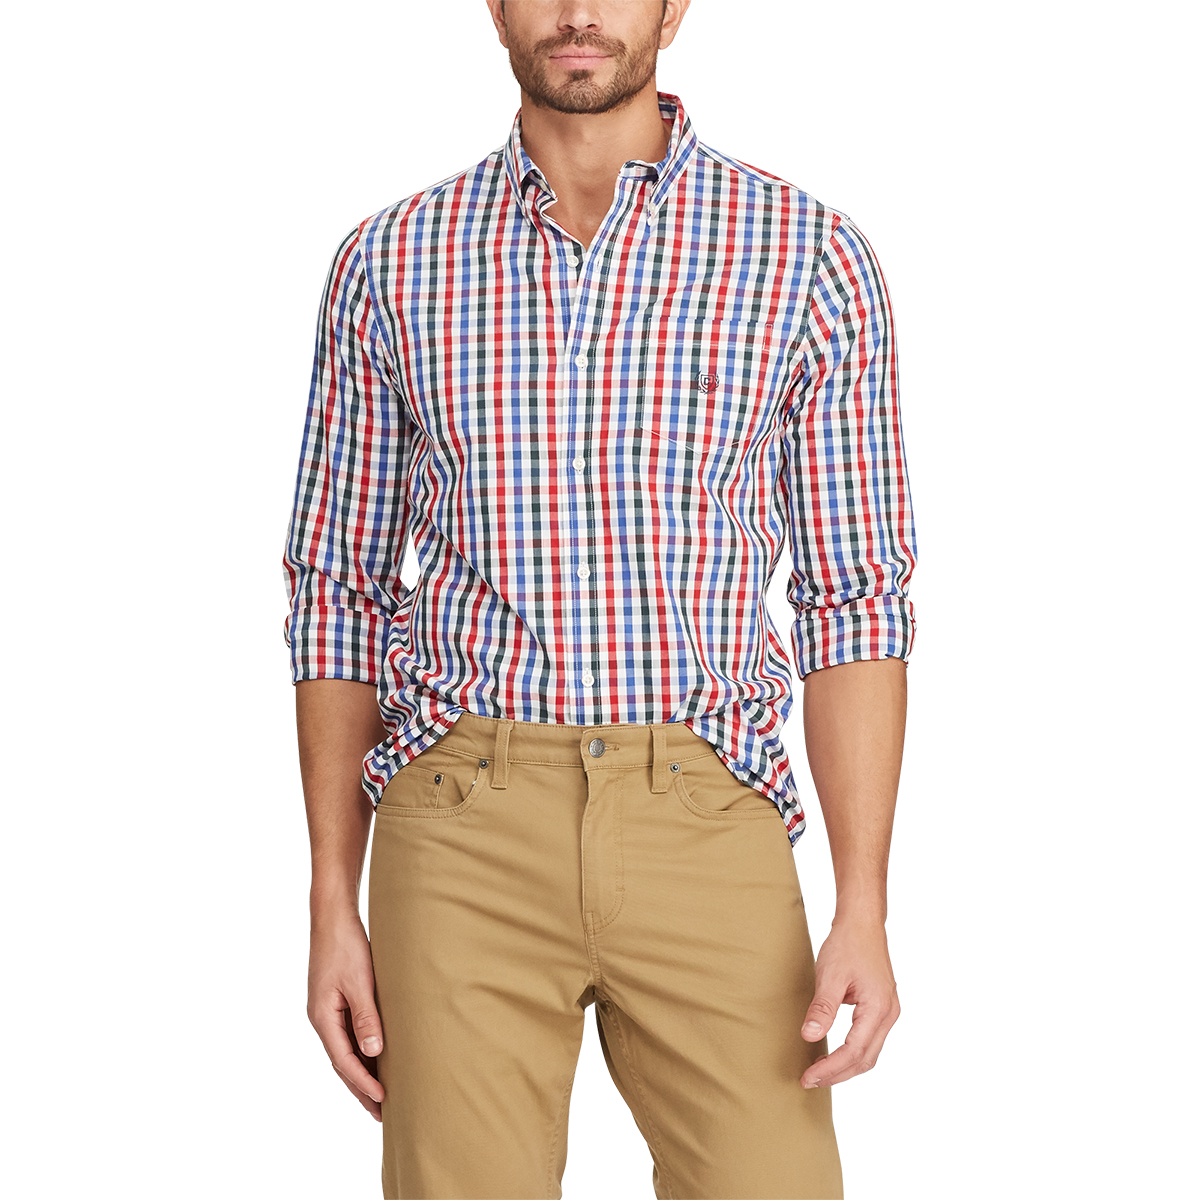 Chaps Men's Easy-Care Stretch Gingham Woven Long-Sleeve Shirt - White, M